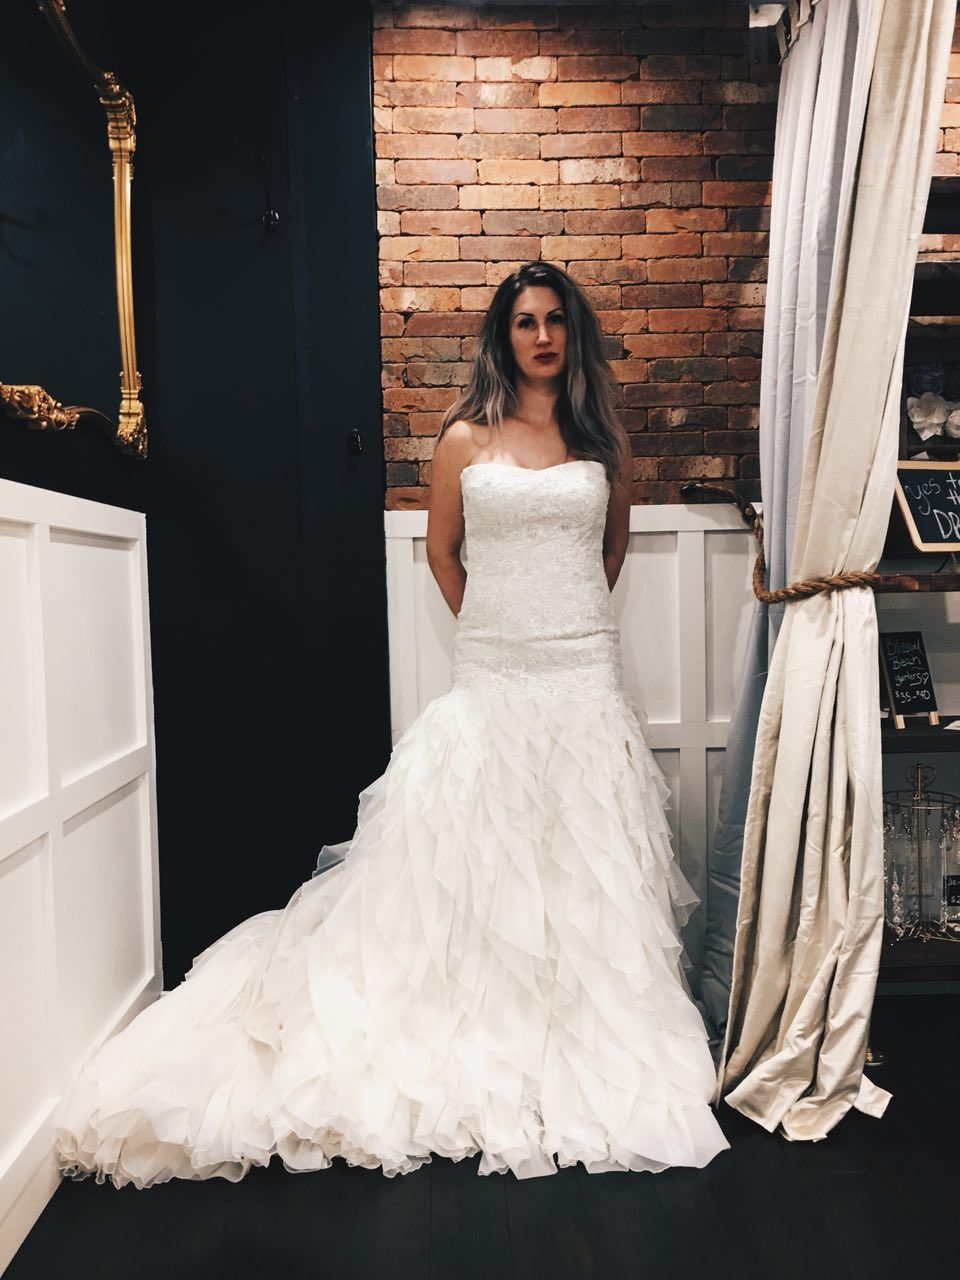 Amazing Ivory wedding dress in Essence of Australia collection